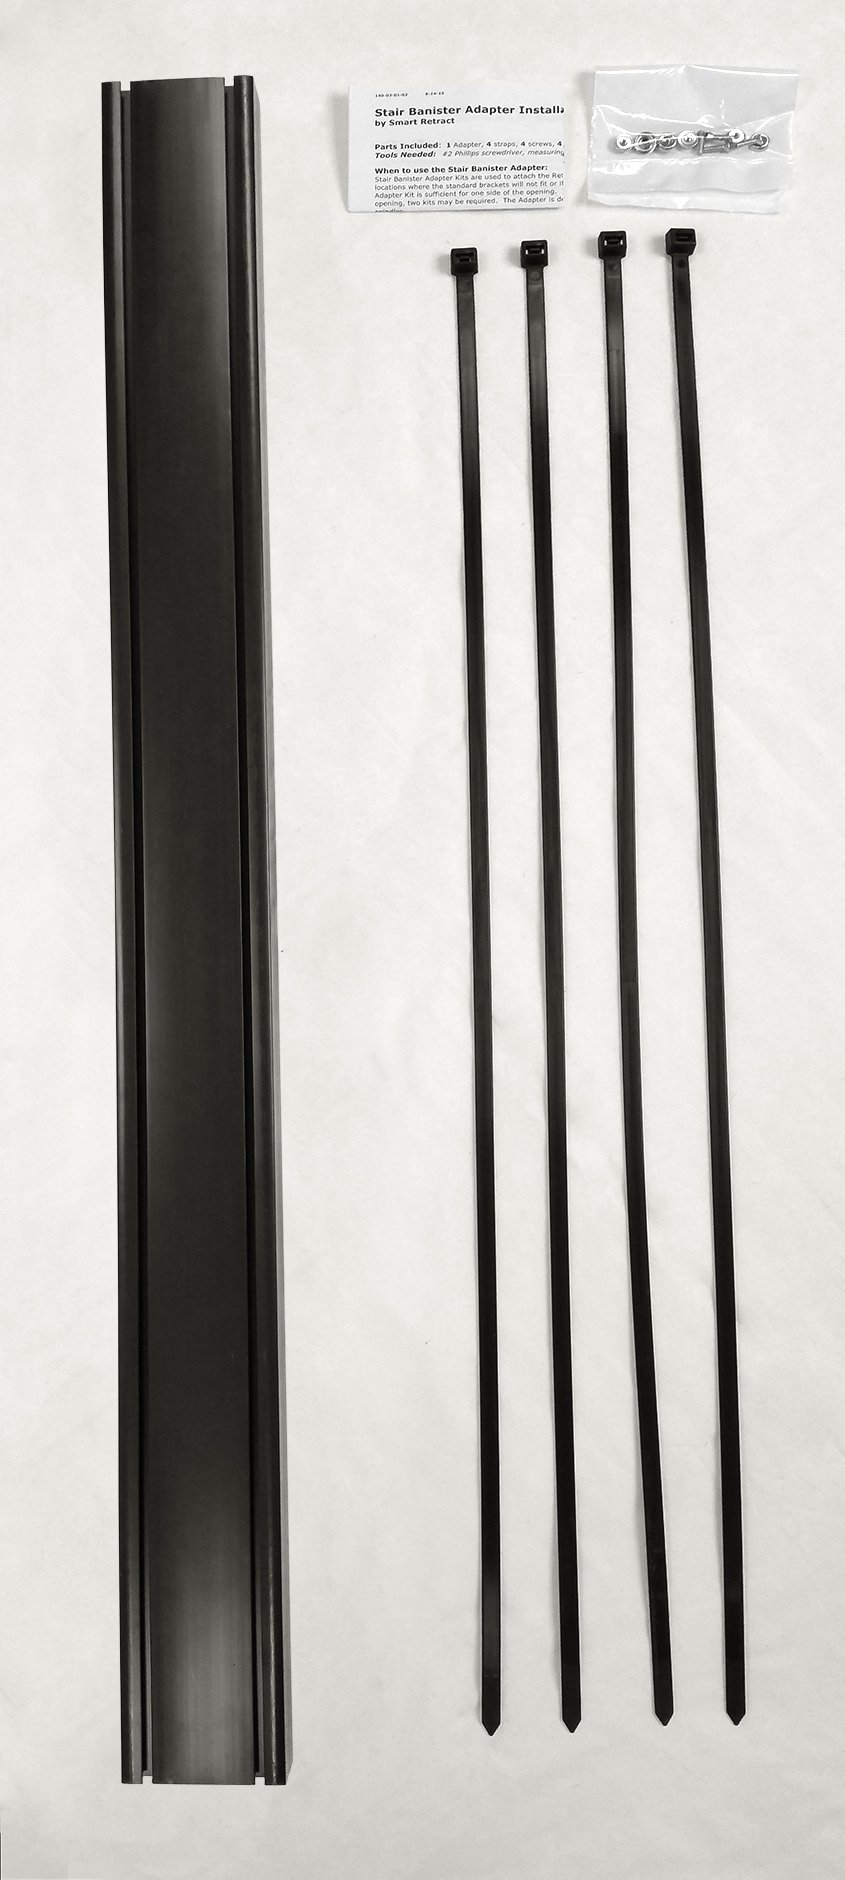 Retract-A-Gate Stair Banister Kit (36 inches tall, black)